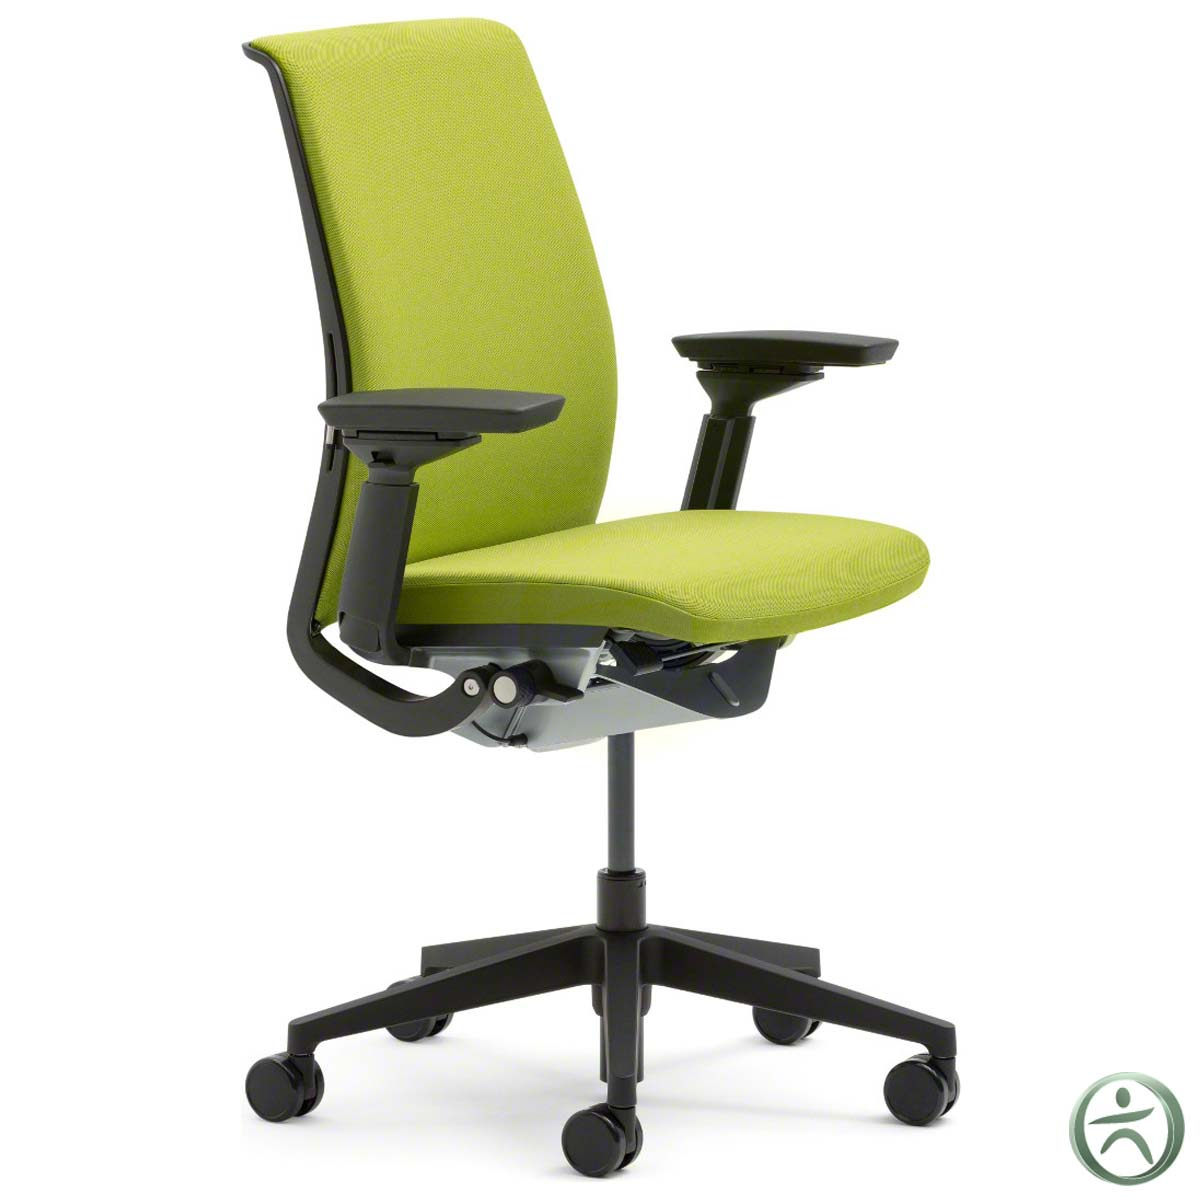 Steelcase Think Chair Steelcase Think Chair Top Blog For Chair Review